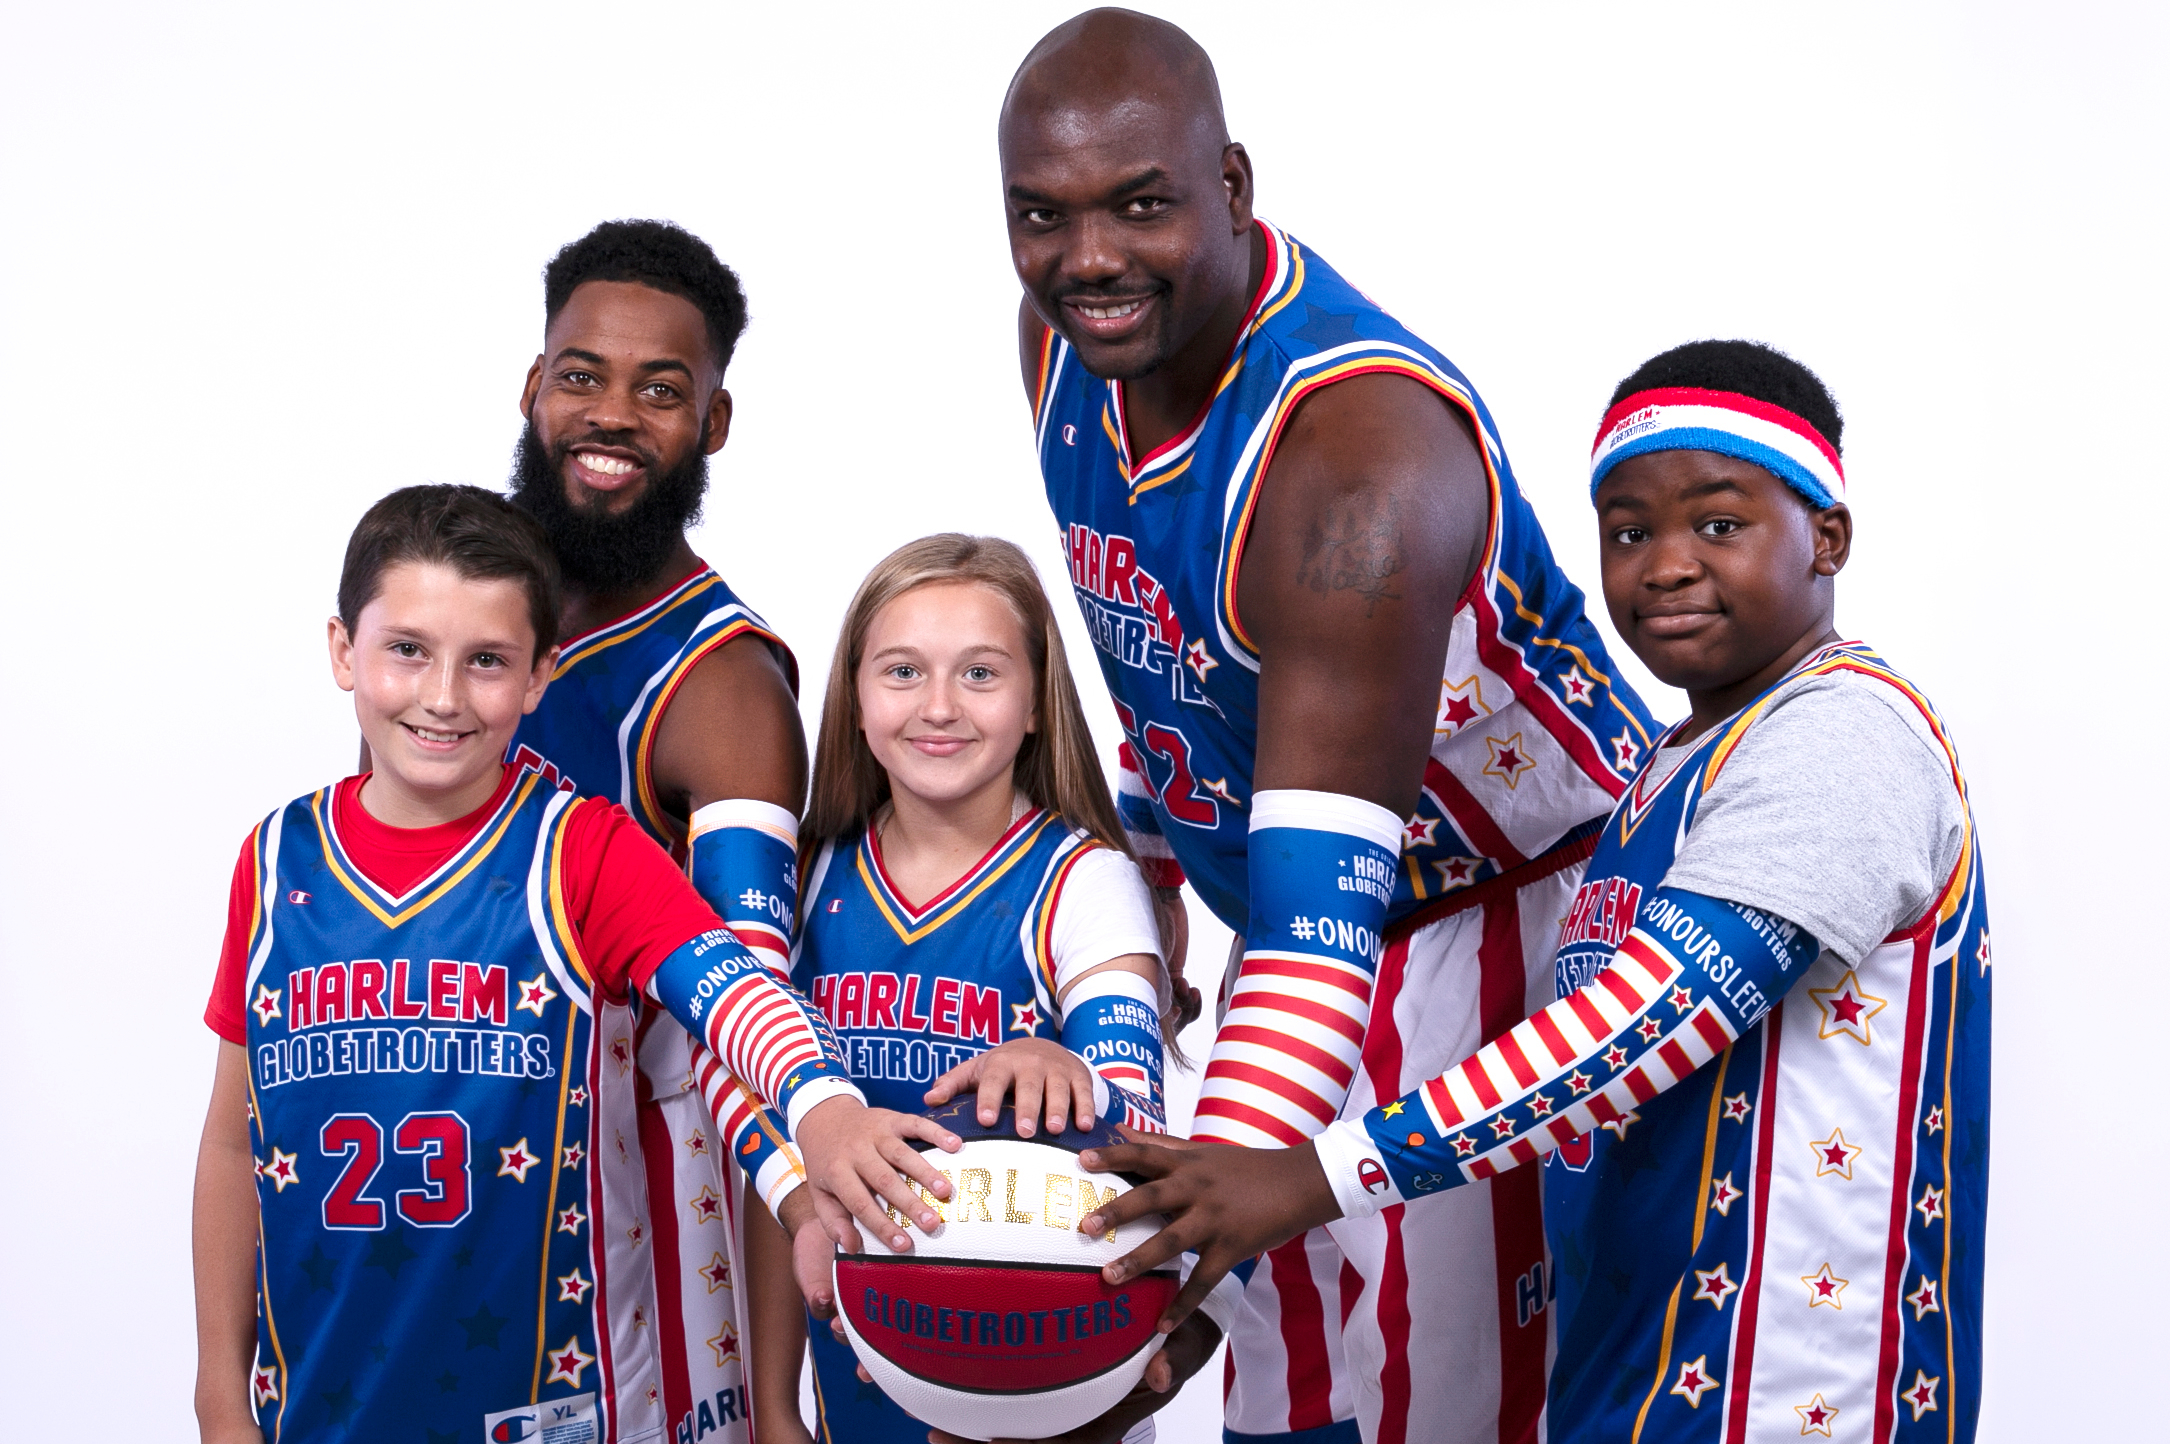 Harlem Globetrotters On Our Sleeves arm sleeve